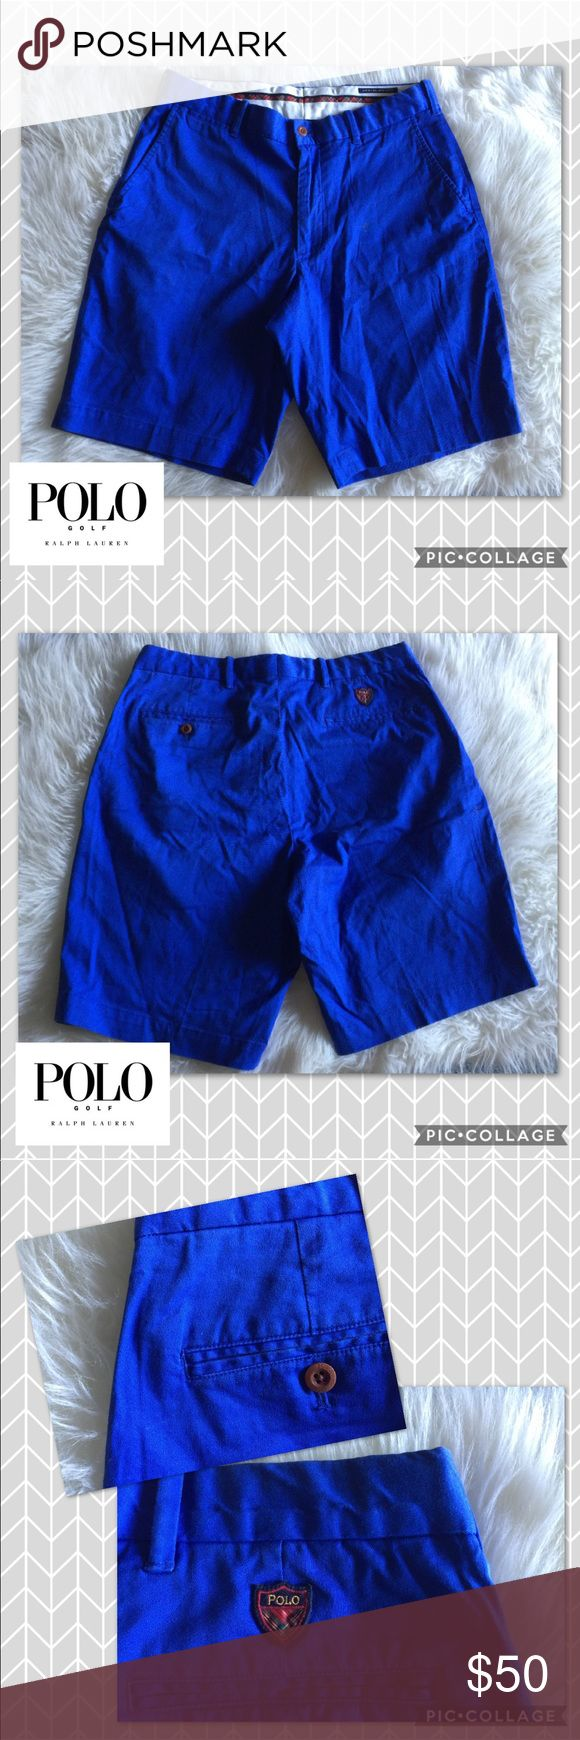 Polo Golf Shorts Men's Polo Golf Shorts 🏌🏻🐎 NWOT  🔹Blue  🔹Cotton Twill With Stretch  🔹From the Ralph Lauren, Polo Golf collection 🔹Similar pair retail for $75 on Ralph Lauren website. Ralph Lauren Shorts